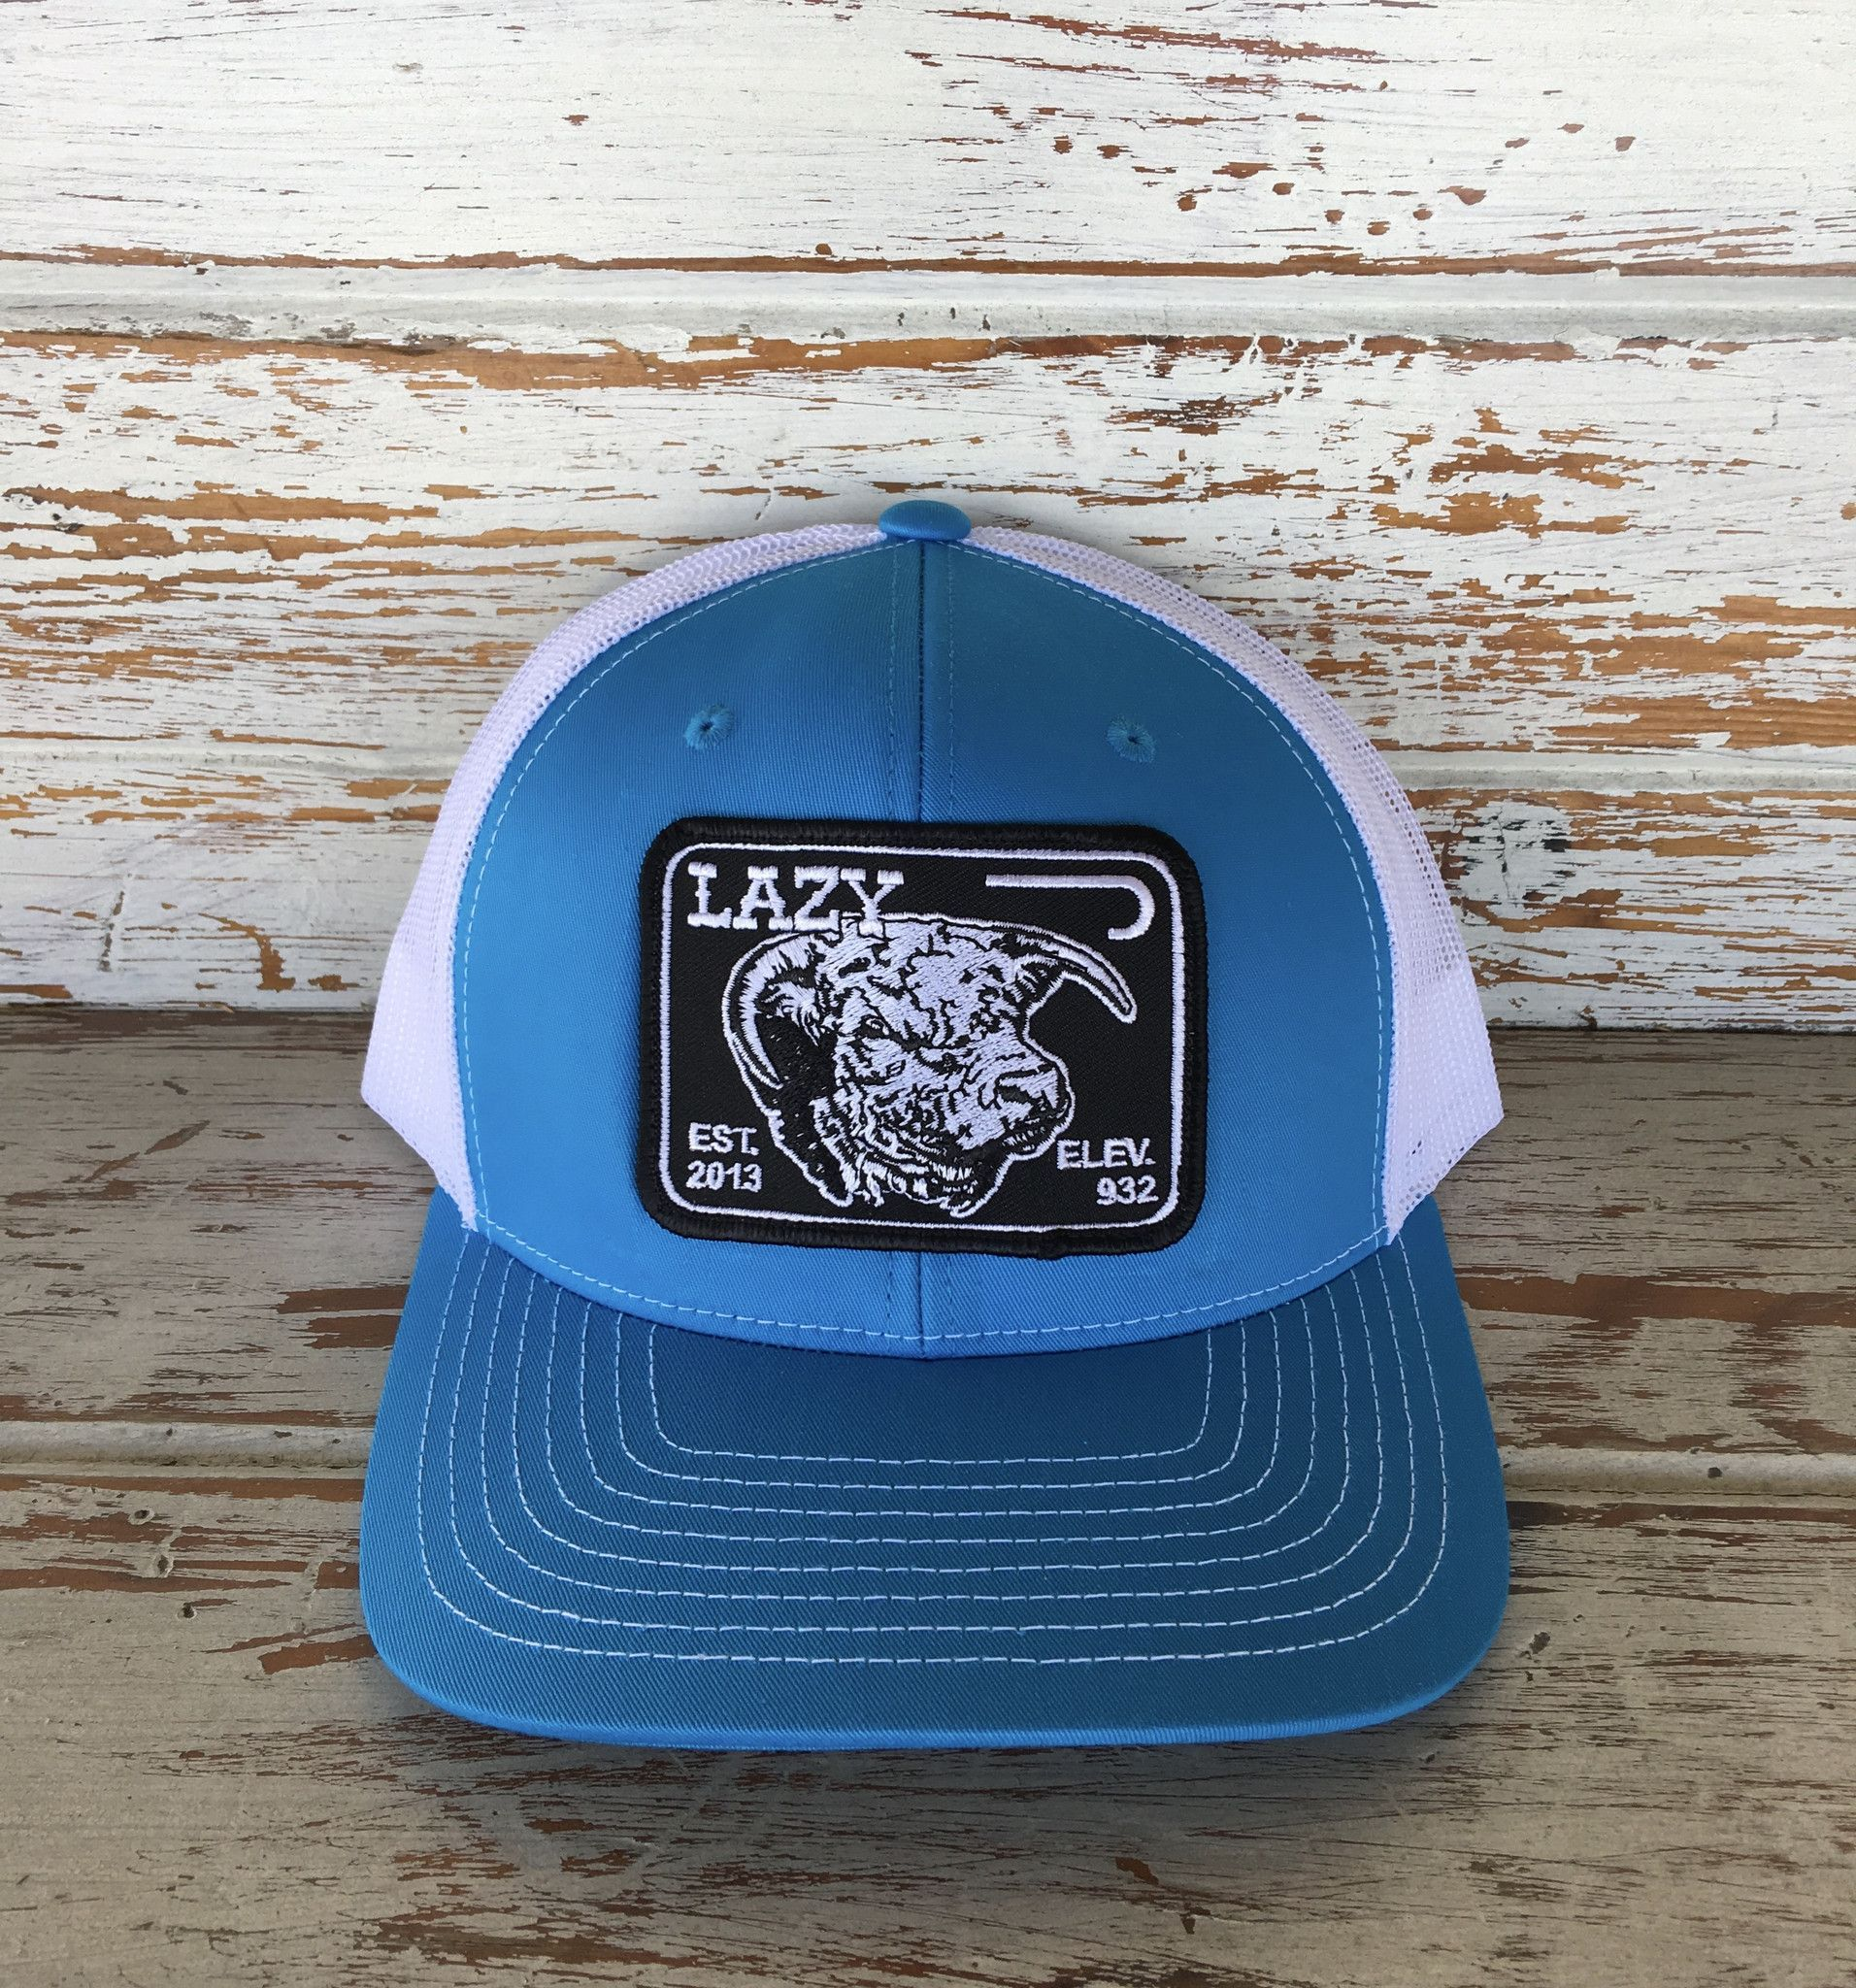 b36307e1c177c Lazy J Ranch Wear Elevation Patch Hat (Cyan White) 3.5